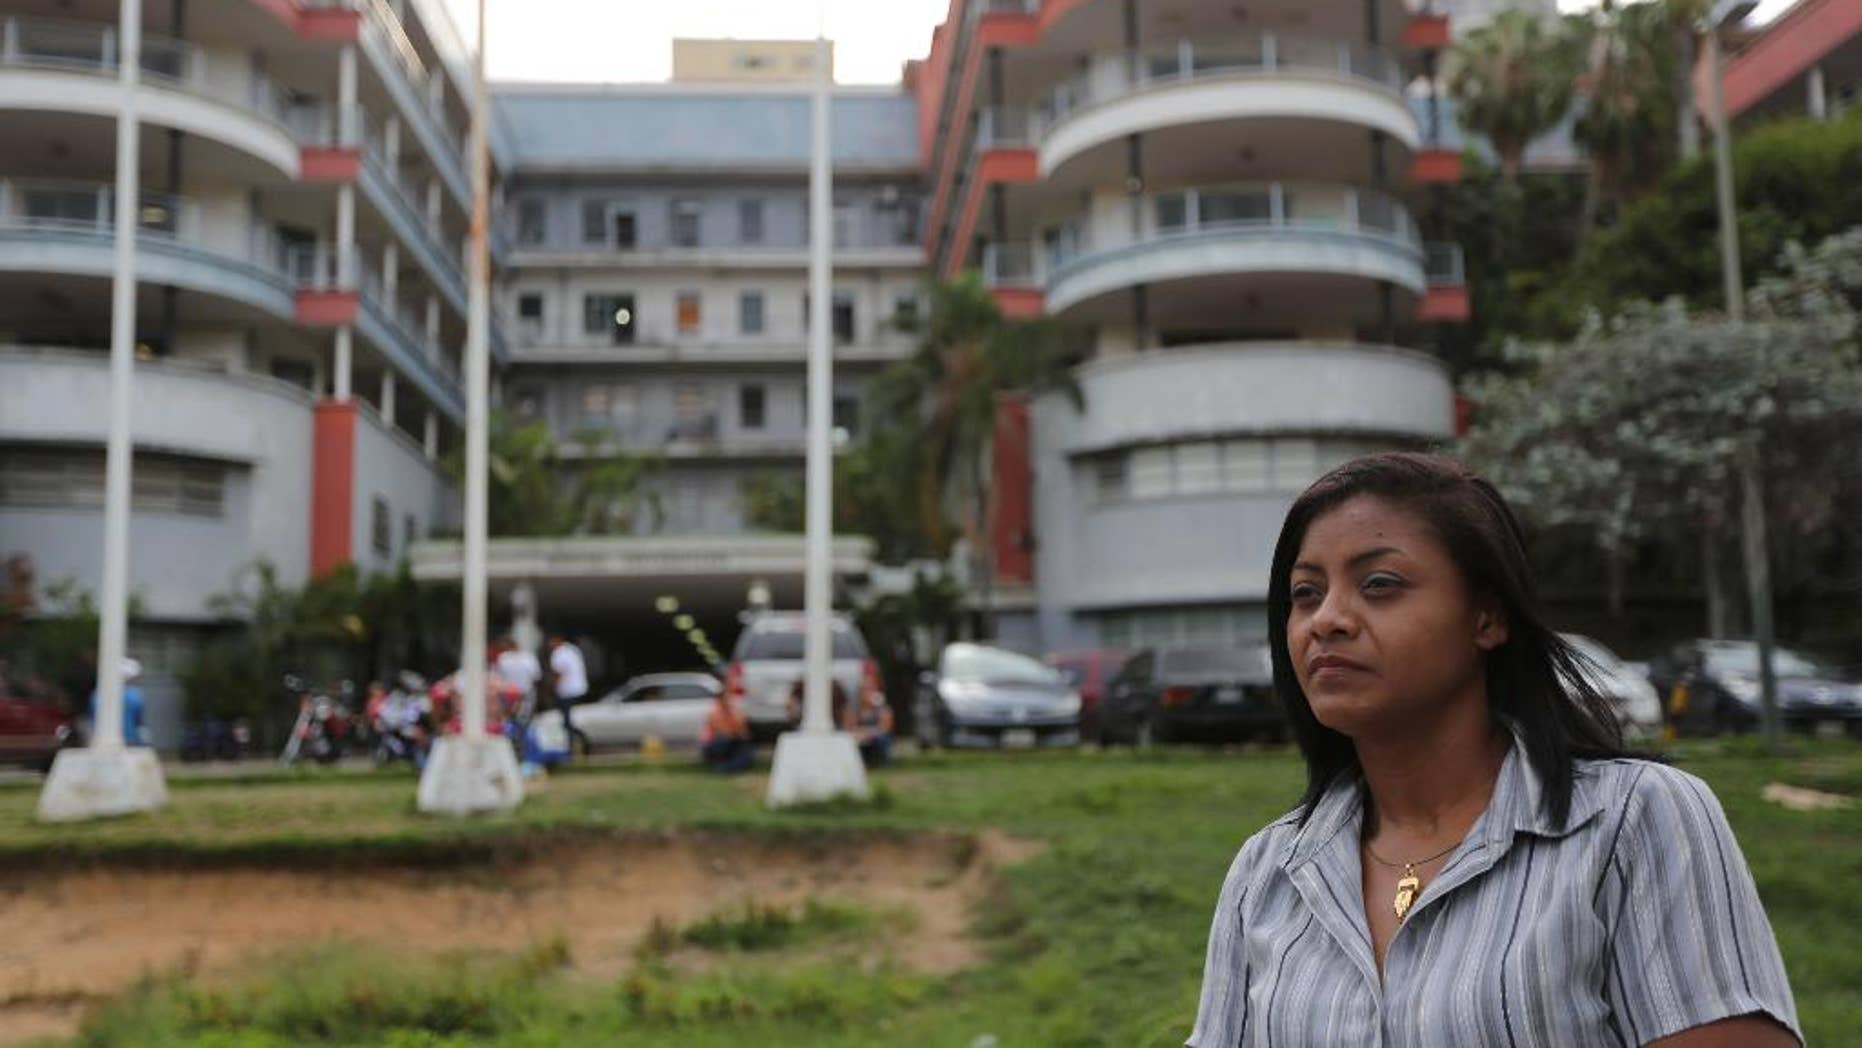 """Carmen Bolivar, a University Hospital nurse, poses for a photo outside of the Hospital in Caracas, Venezuela, Wednesday, Aug. 13, 2014. Last June Carmen stood paralyzed by fear next to a patient's brother as a gunman walked in on them. University Hospital, a sprawling, poorly maintained building that resembles a noisy bus station, guards still go unarmed, there is no surveillance system and a worn sign reading """"No entrance"""" is the only thing stopping a person from walking into the operating area. Security workers say they would run if confronted by an armed intruder. (AP Photo/Ariana Cubillos)"""